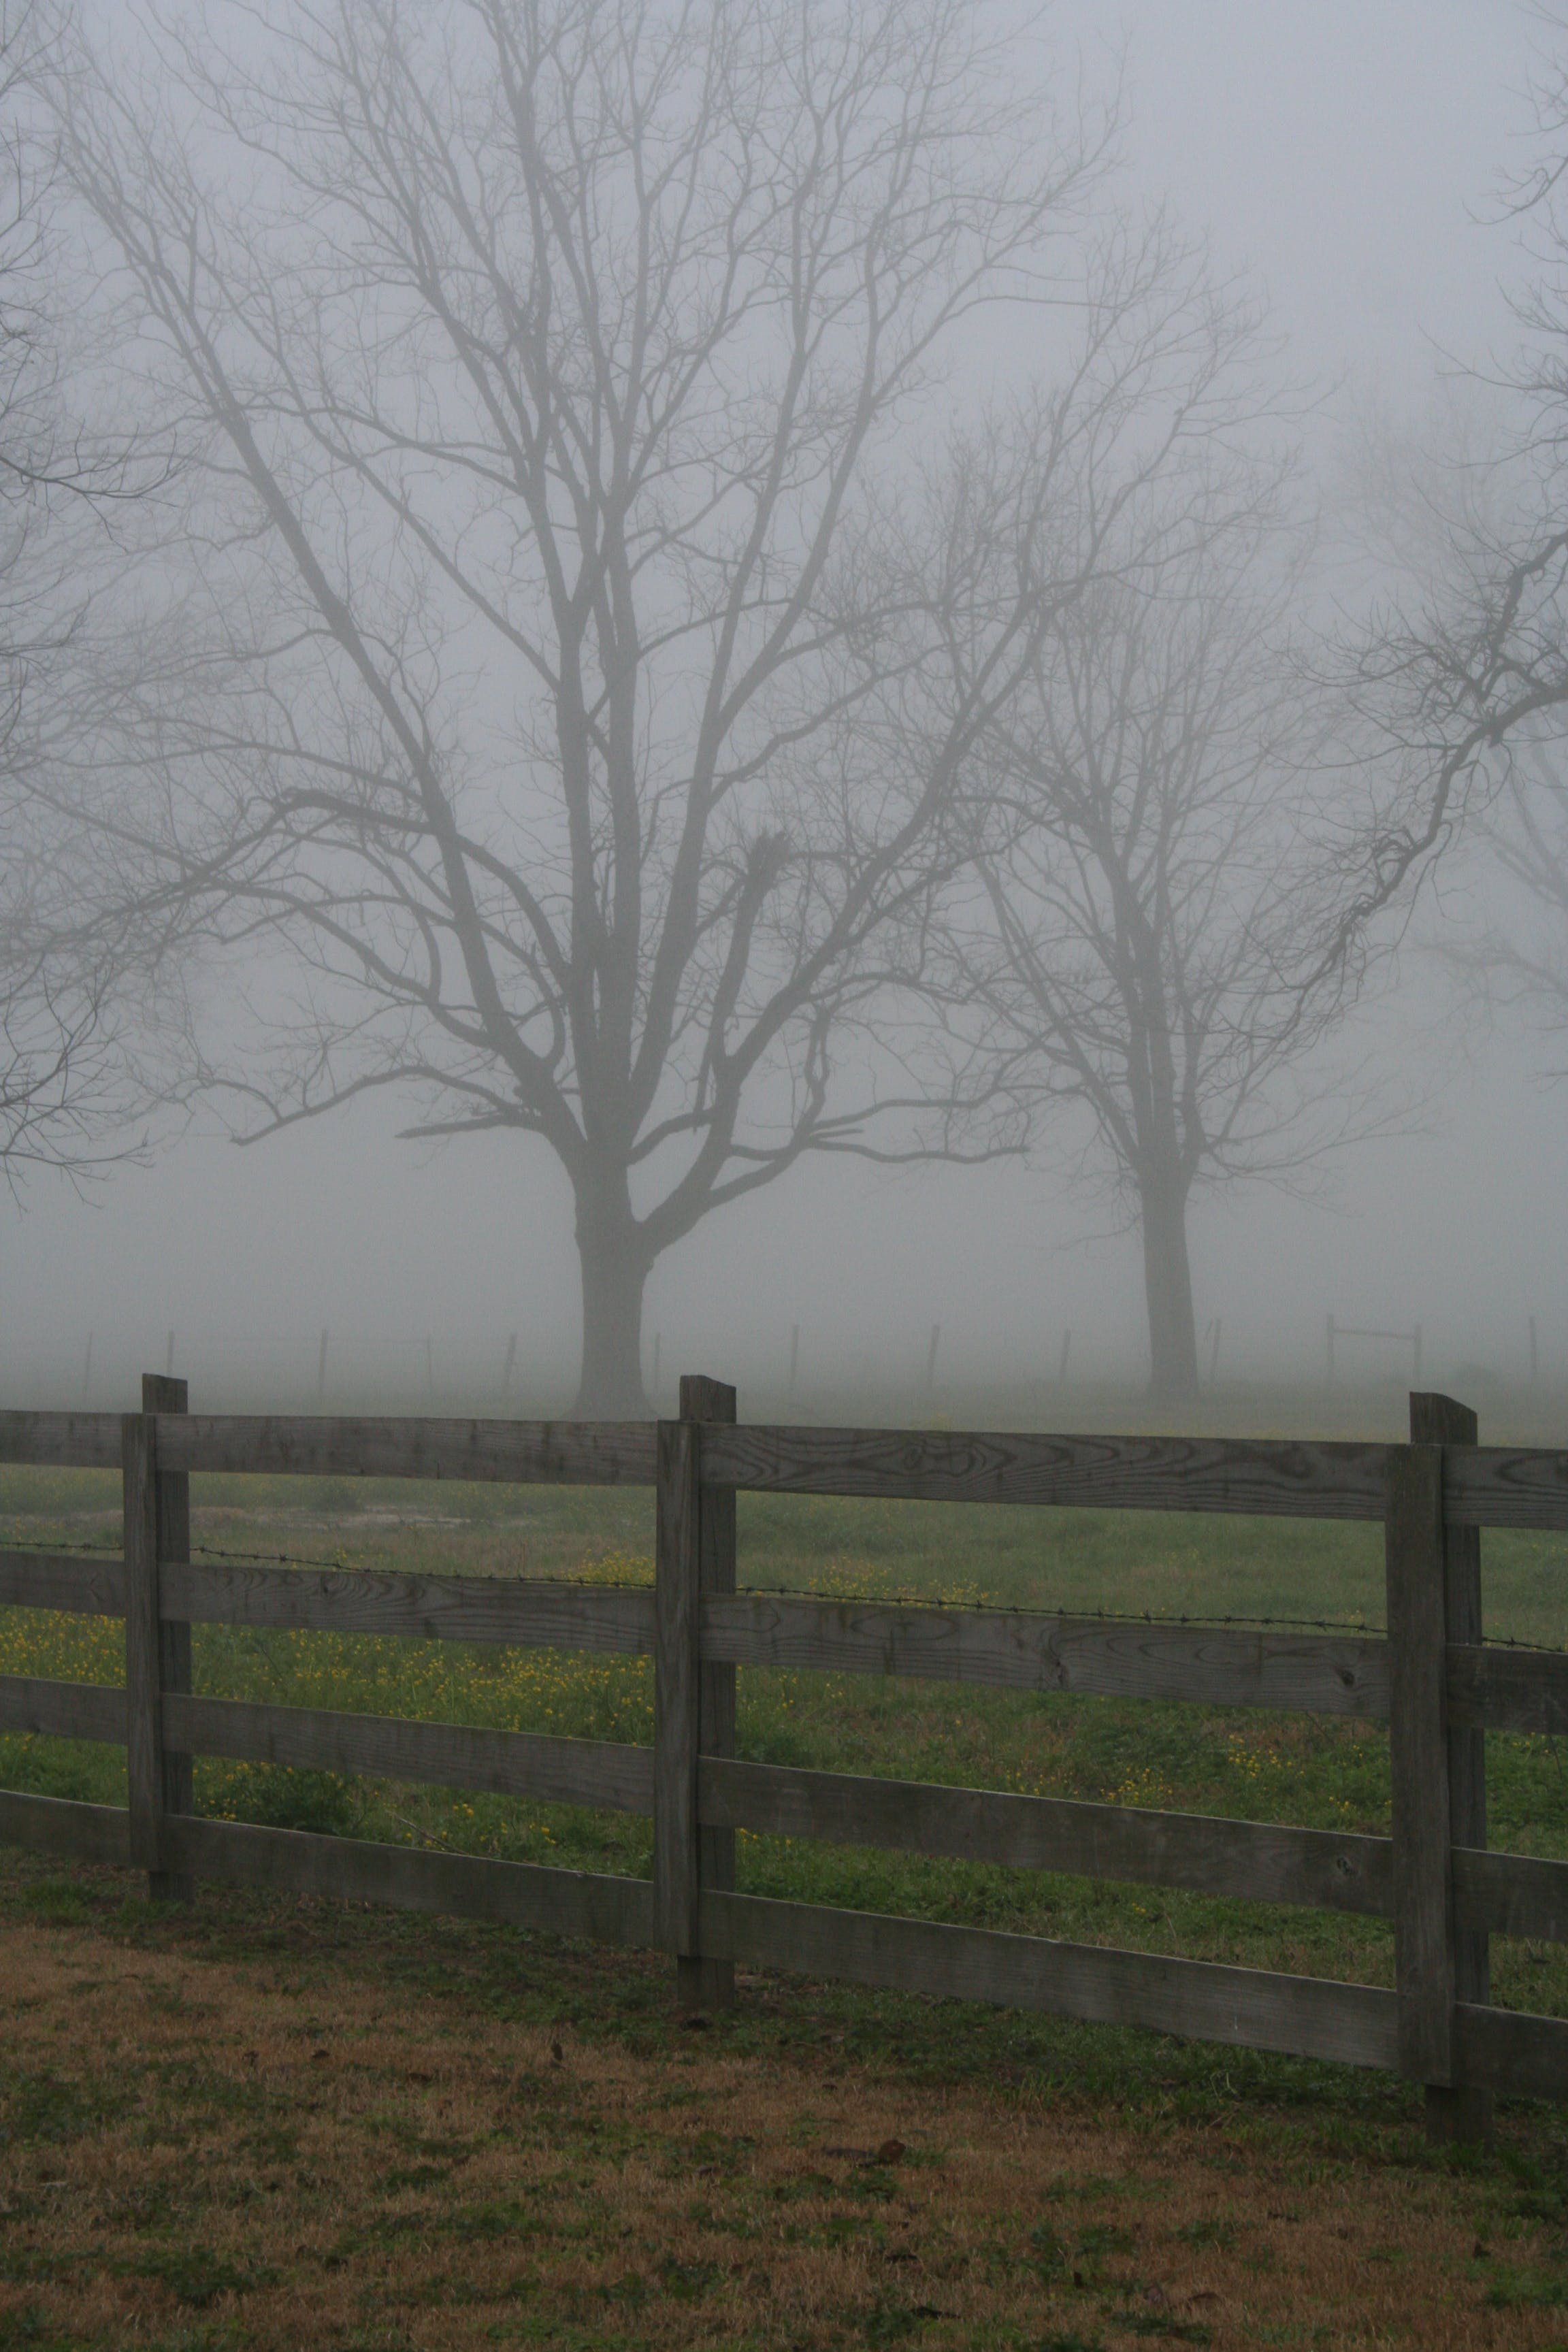 Free stock photo of bare trees, fog, wooden fence